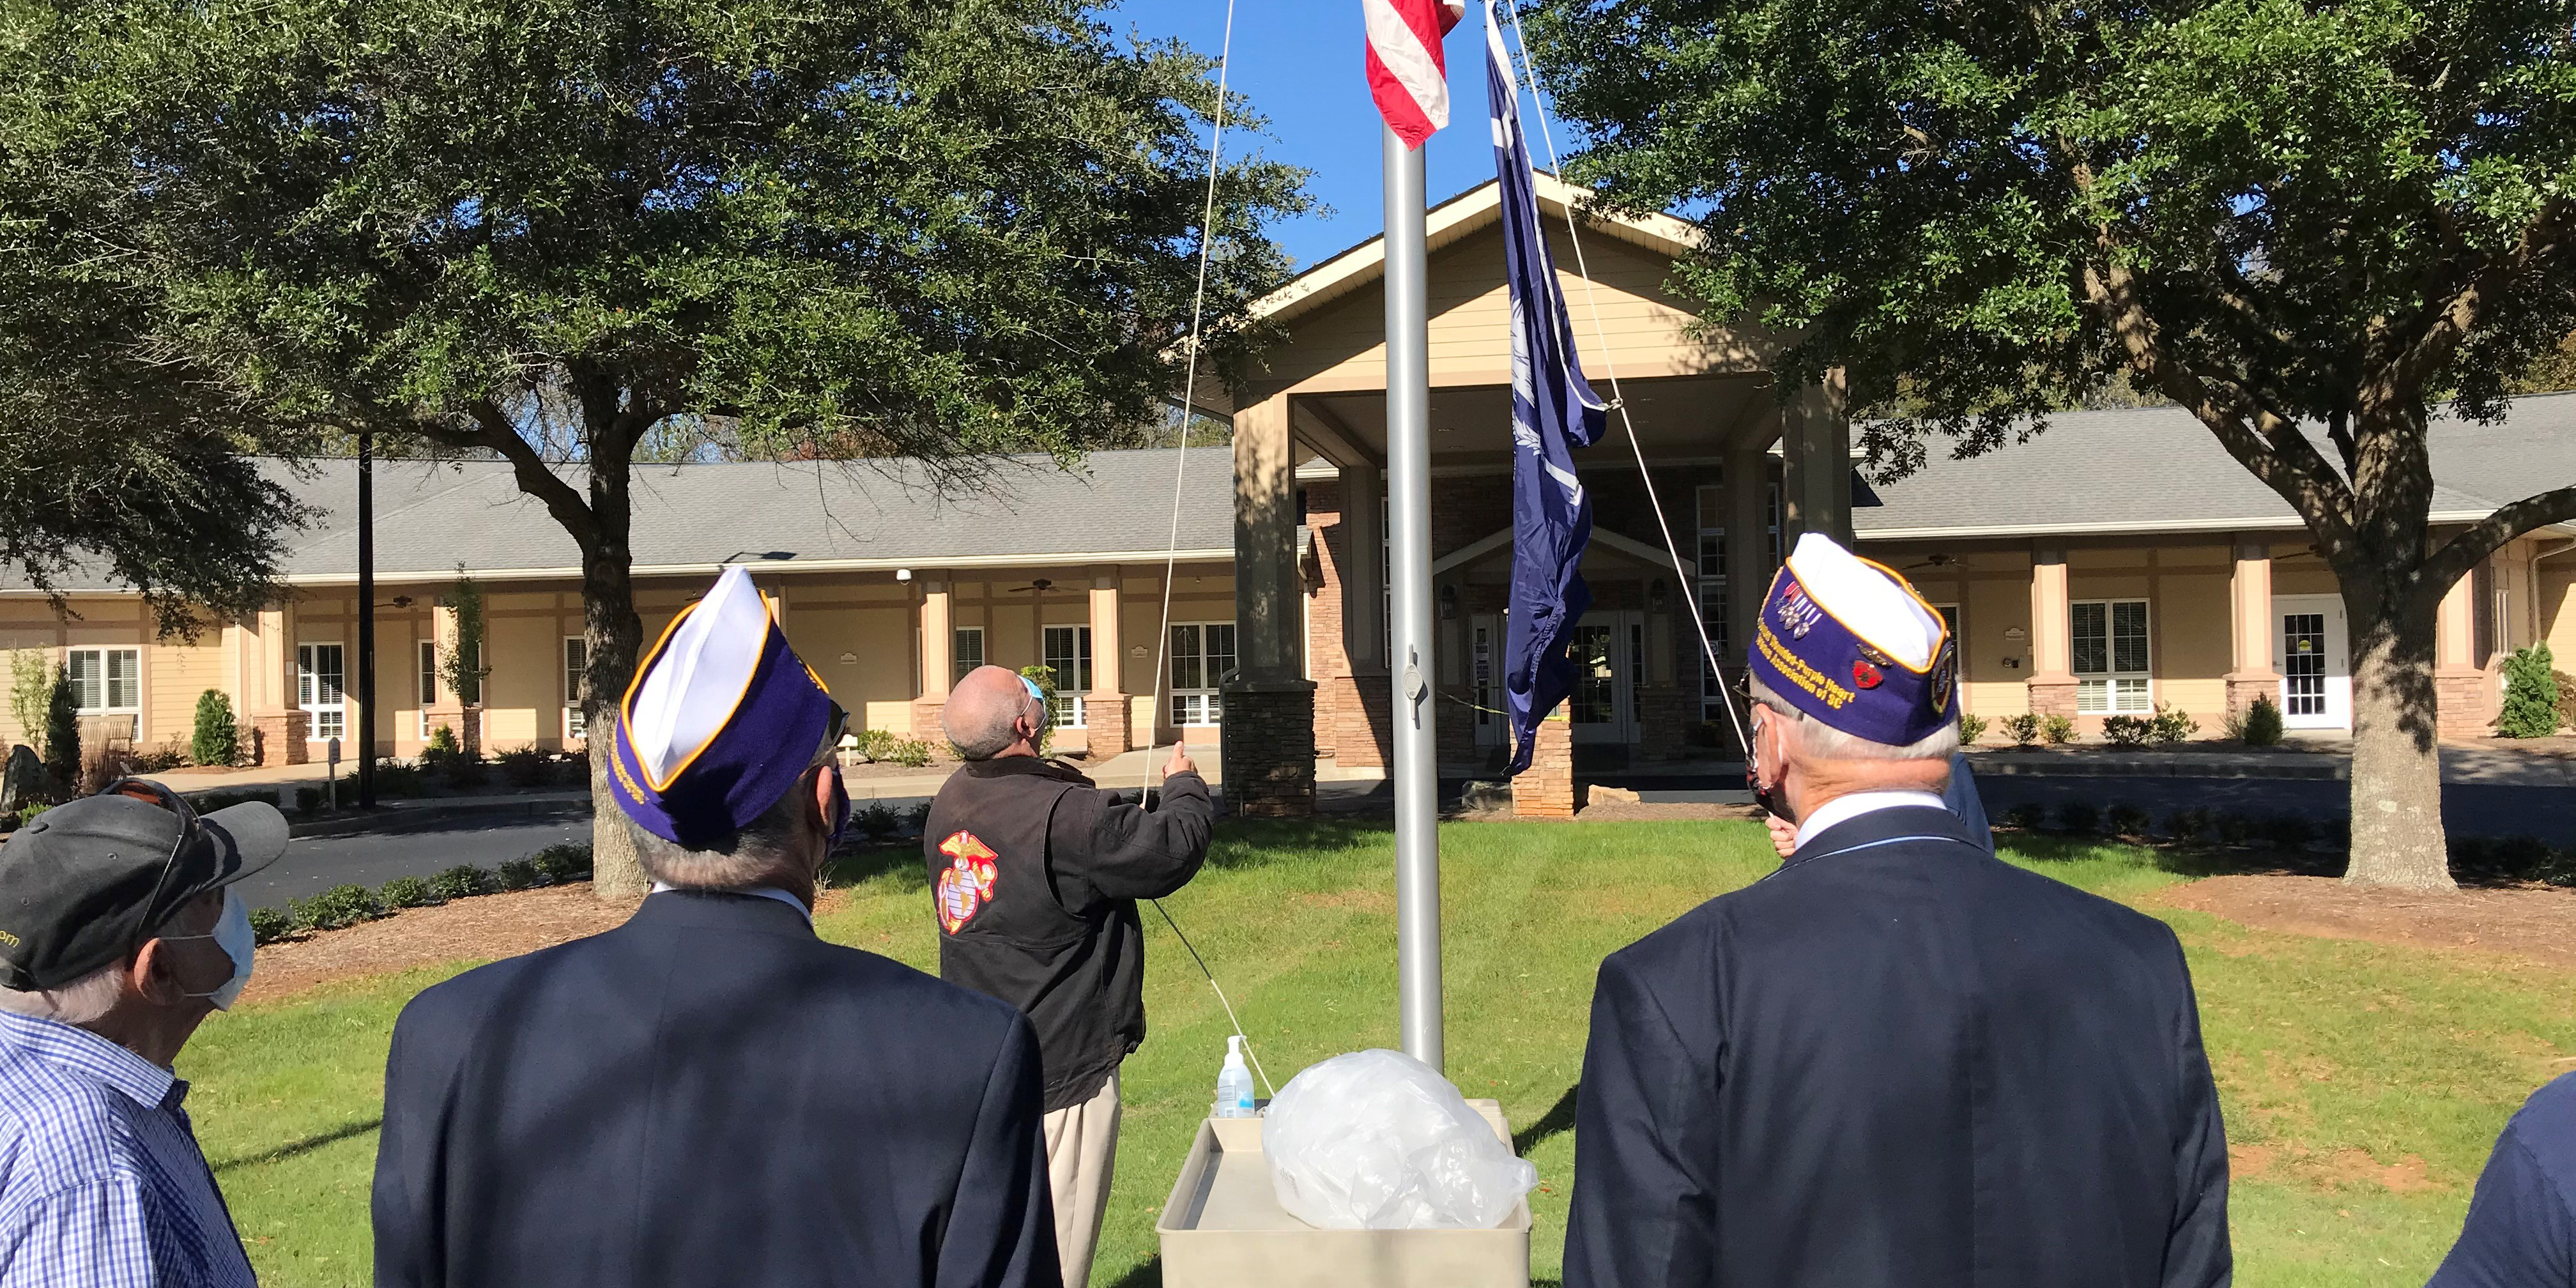 Spartanburg Regional Hospice Home raises a flag in celebration of Veteran's Day